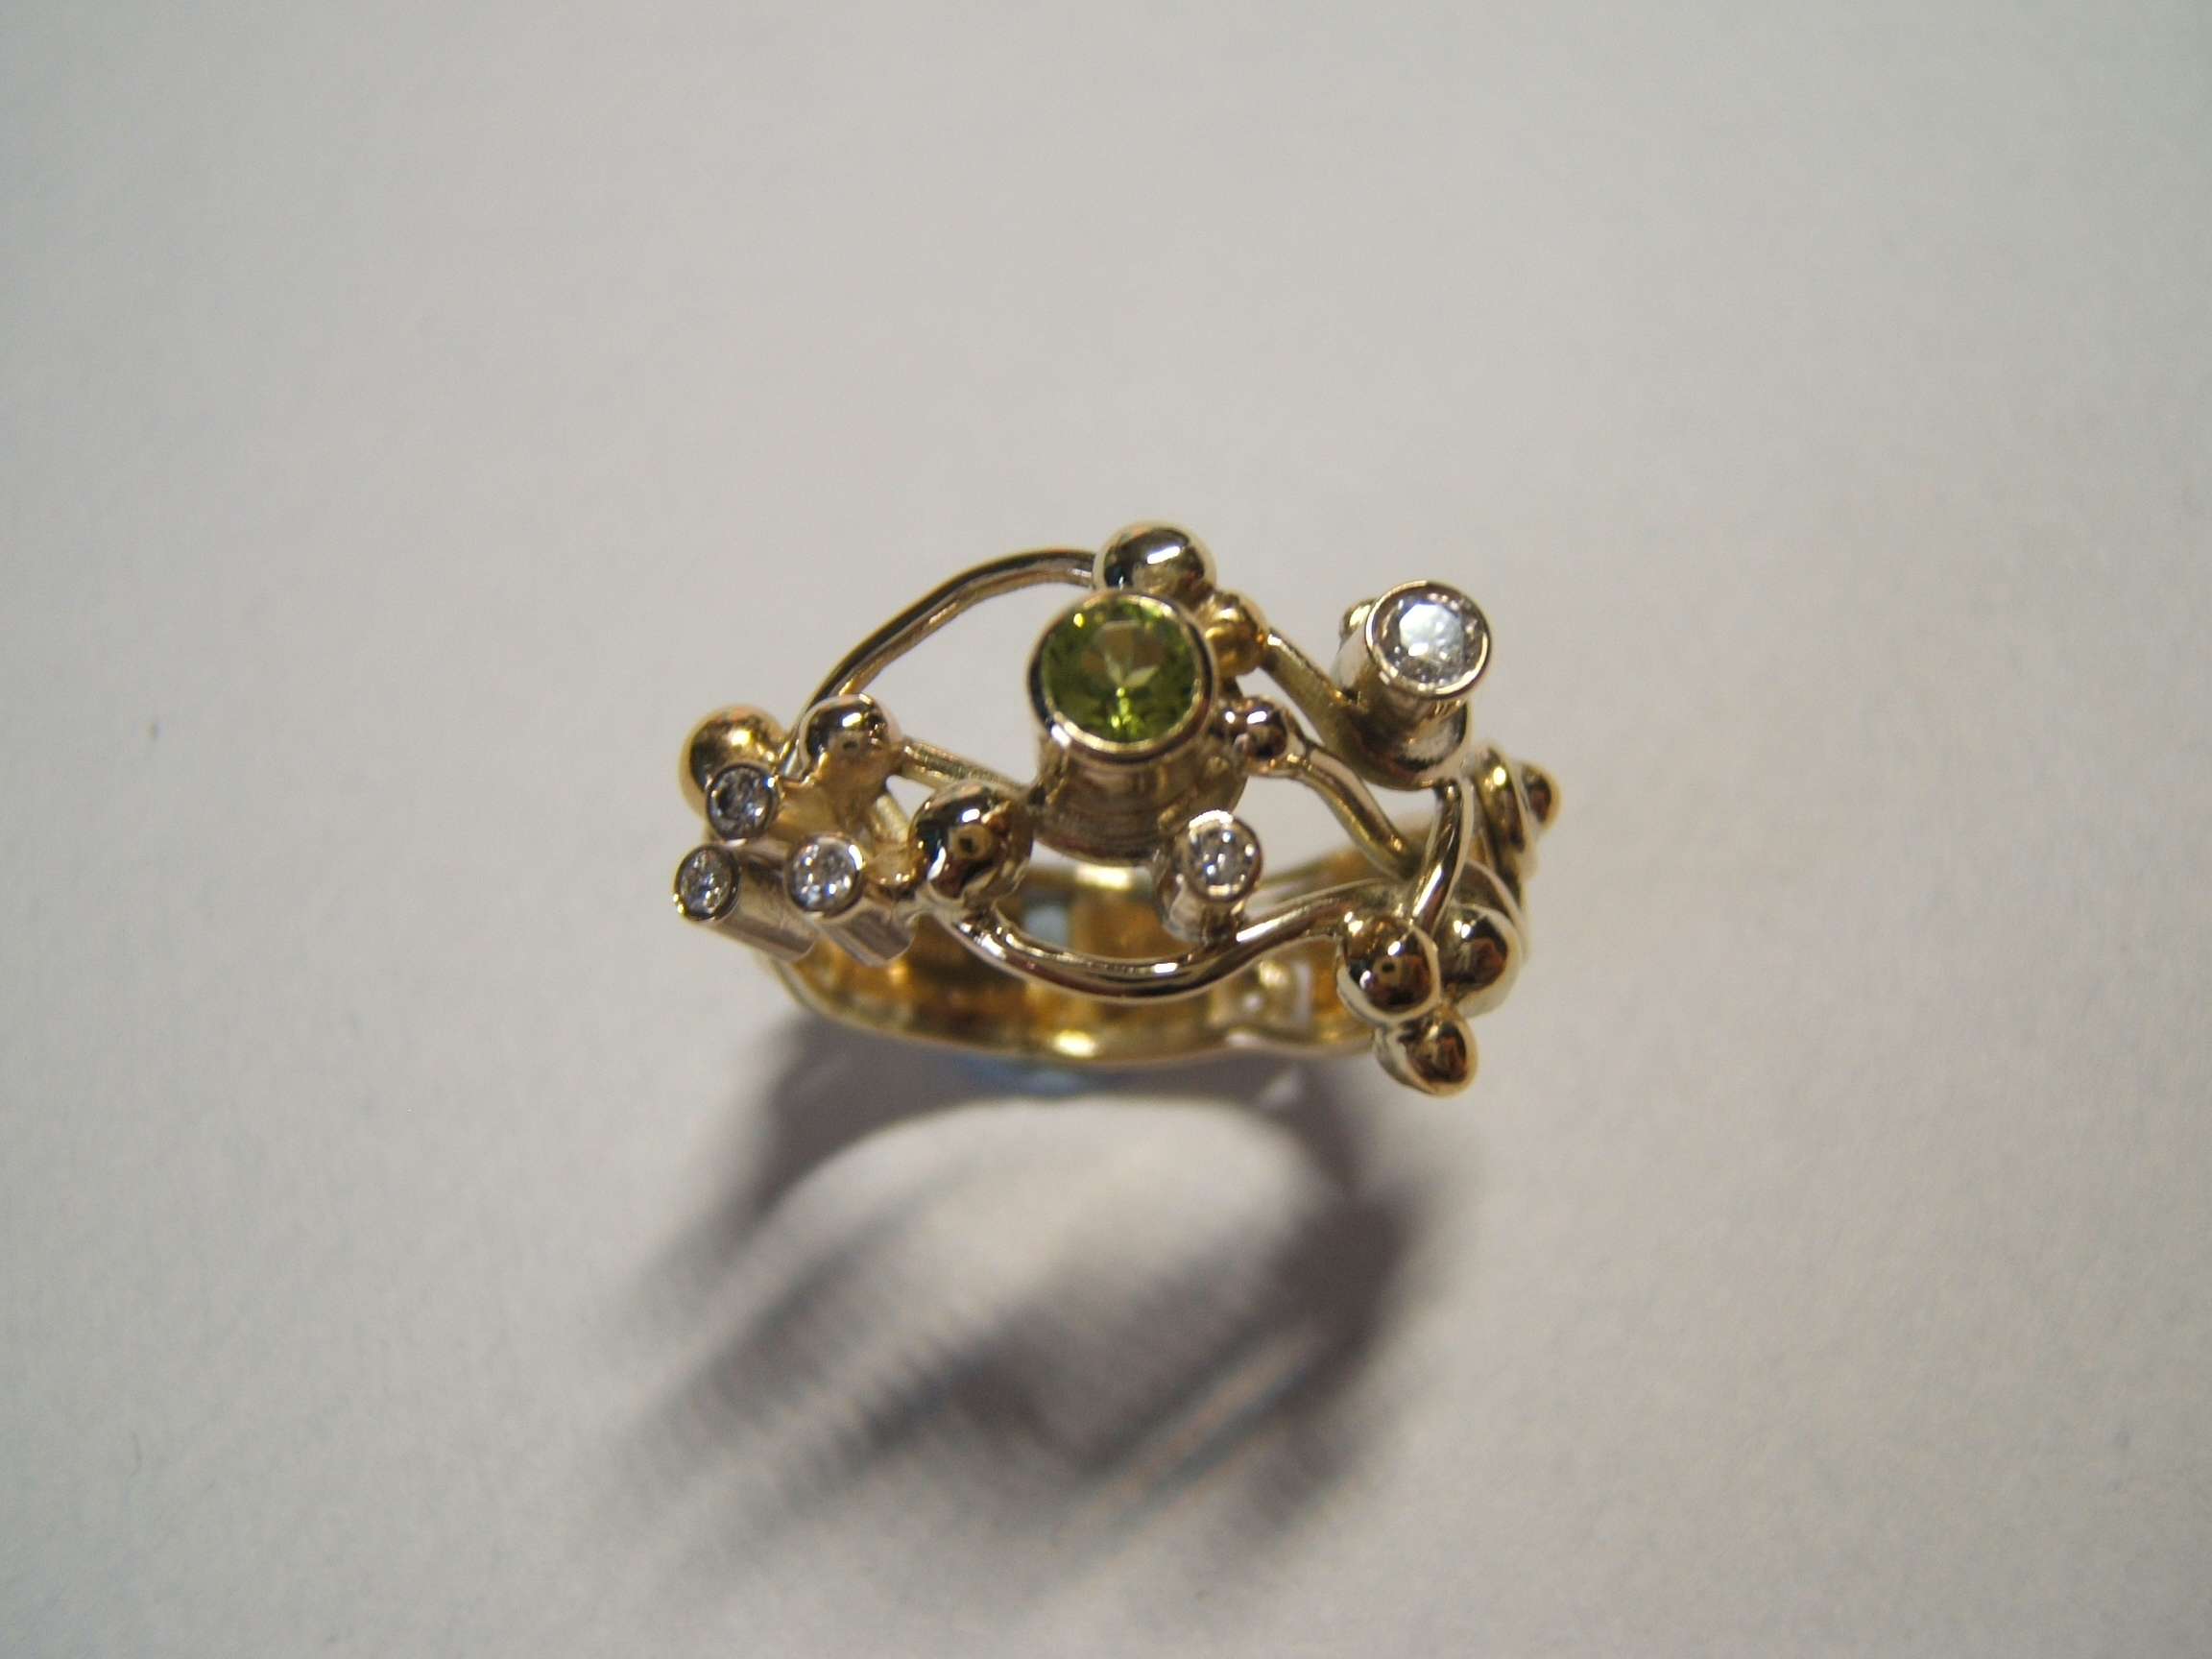 peridot and diamonds ring designed and created by helen burrell